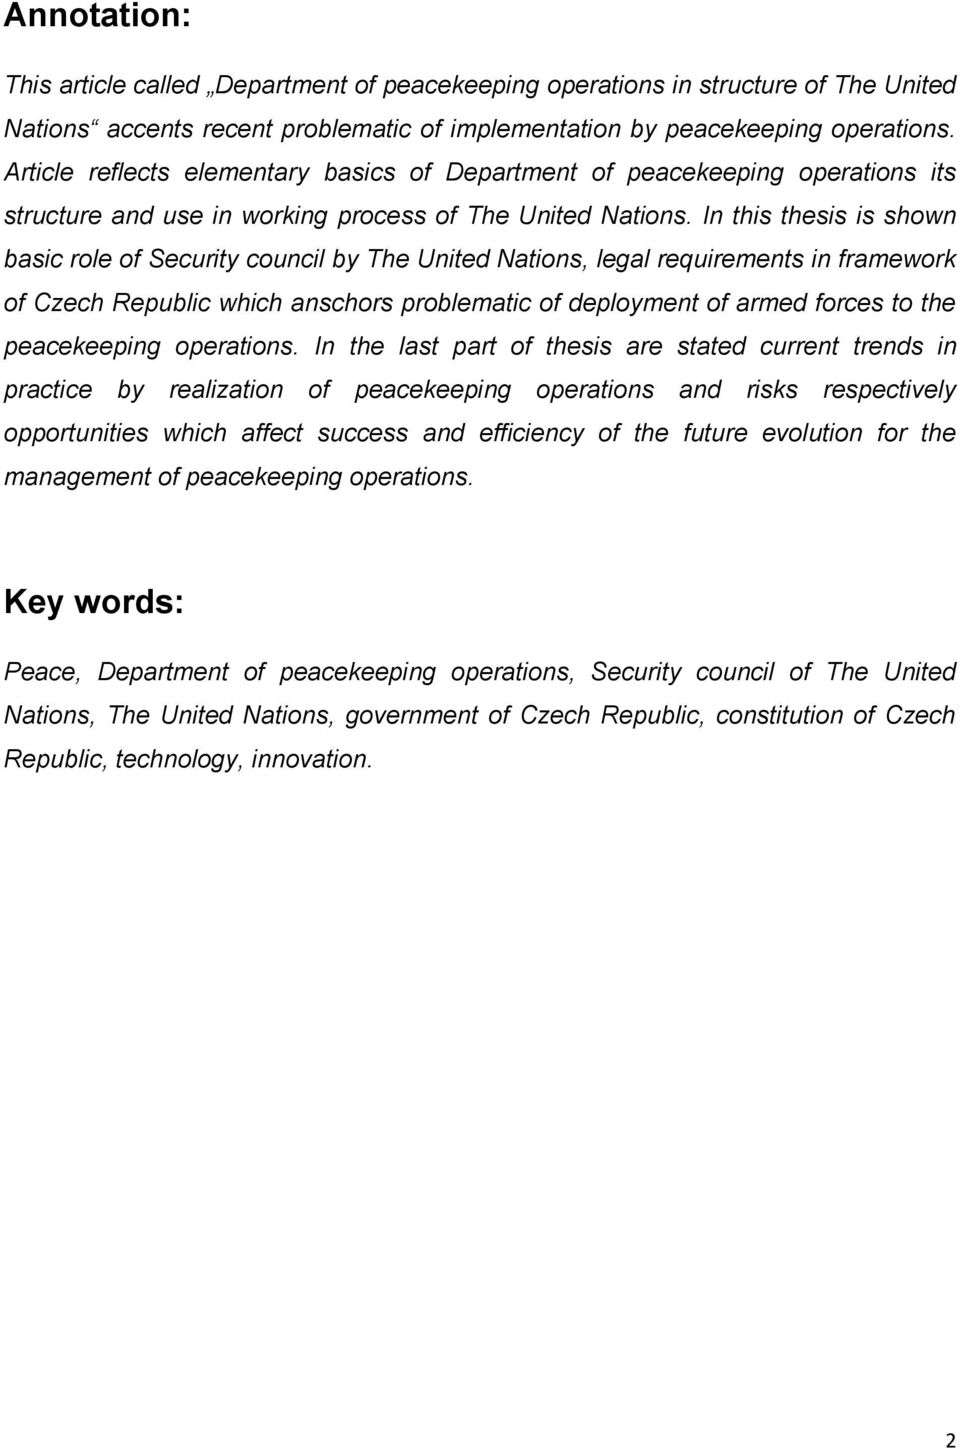 In this thesis is shown basic role of Security council by The United Nations, legal requirements in framework of Czech Republic which anschors problematic of deployment of armed forces to the